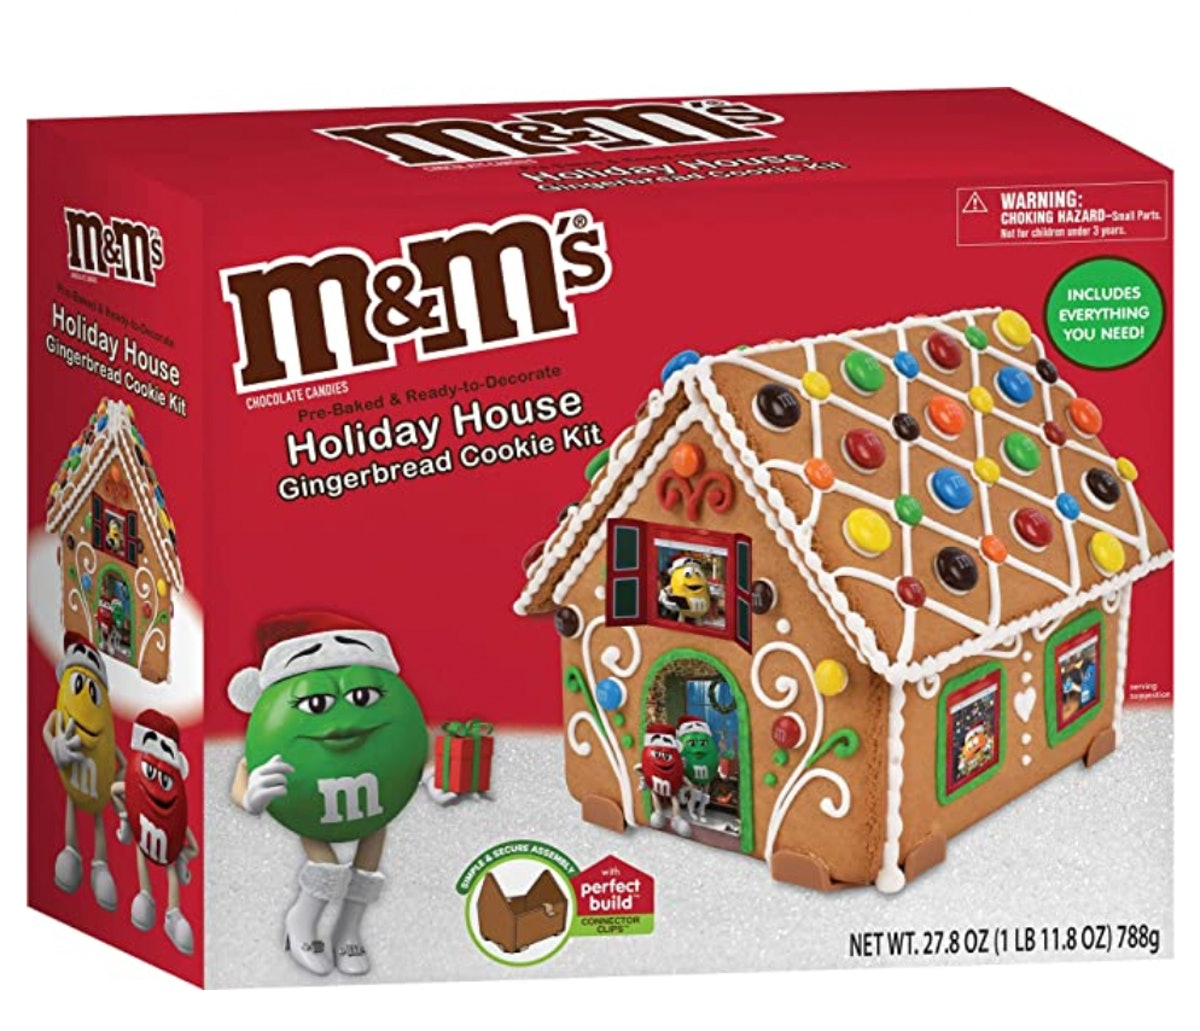 M&M's Holiday House Gingerbread Cookie Kit